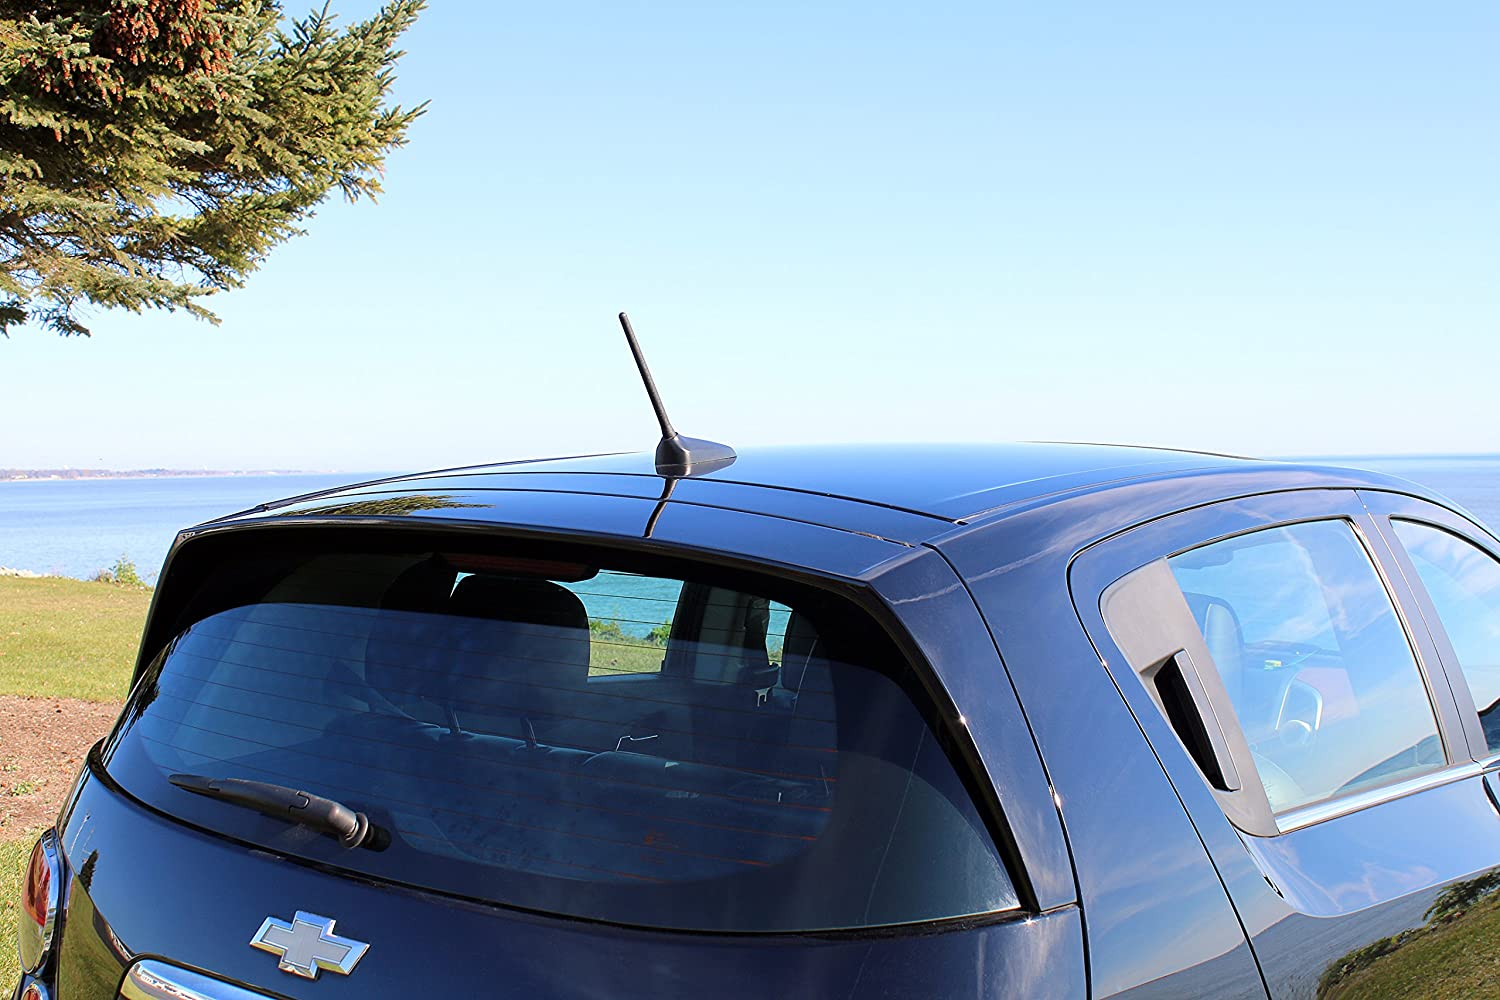 AntennaMastsRus 4 Black Aluminum Antenna is Compatible with Buick Enclave 2016-2017 Made in USA